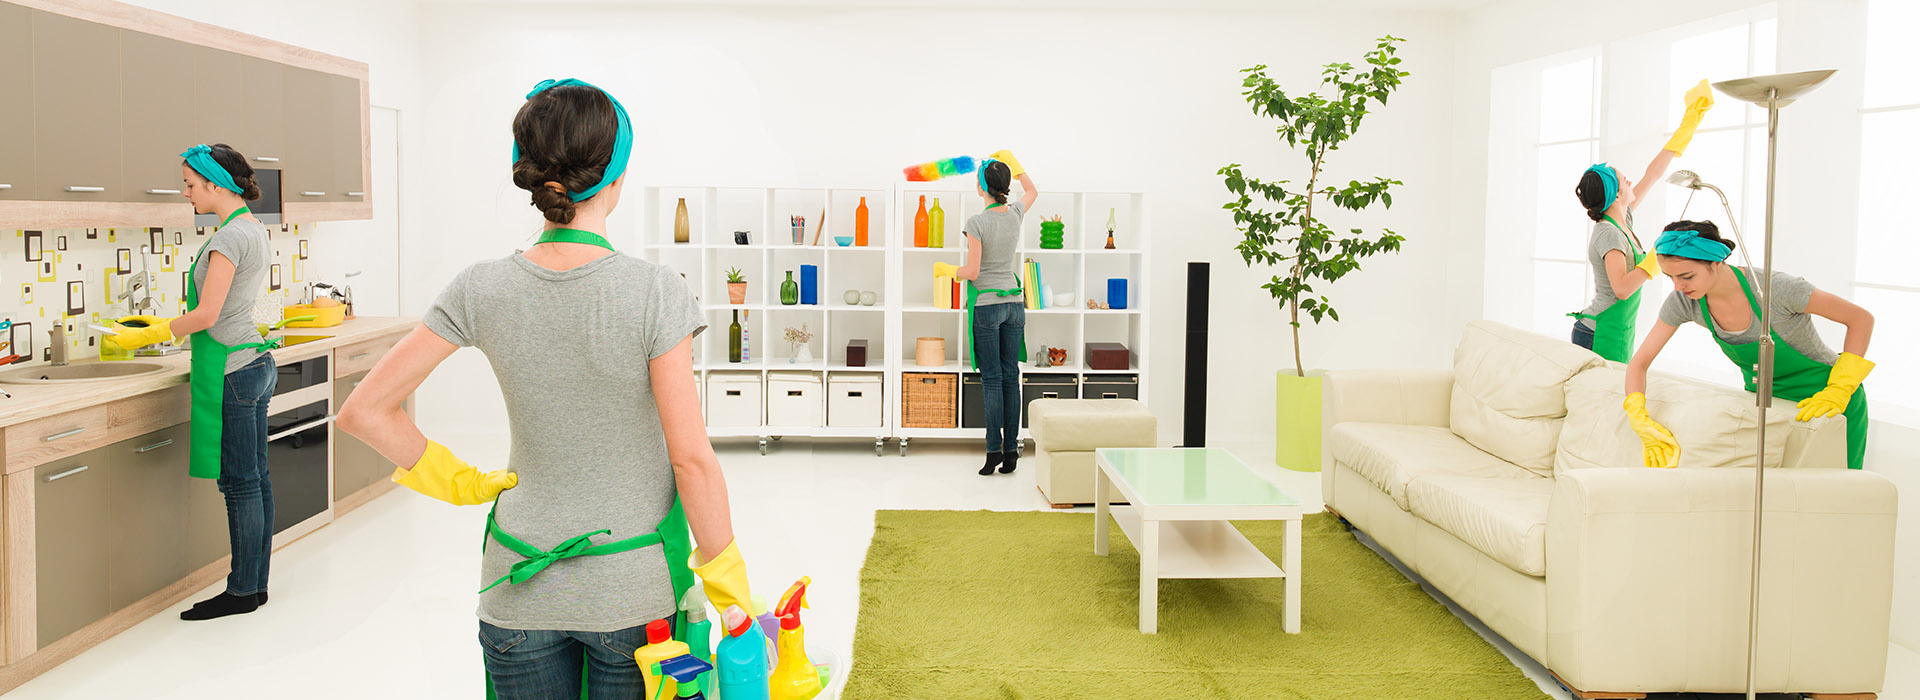 london-house-cleaning-services